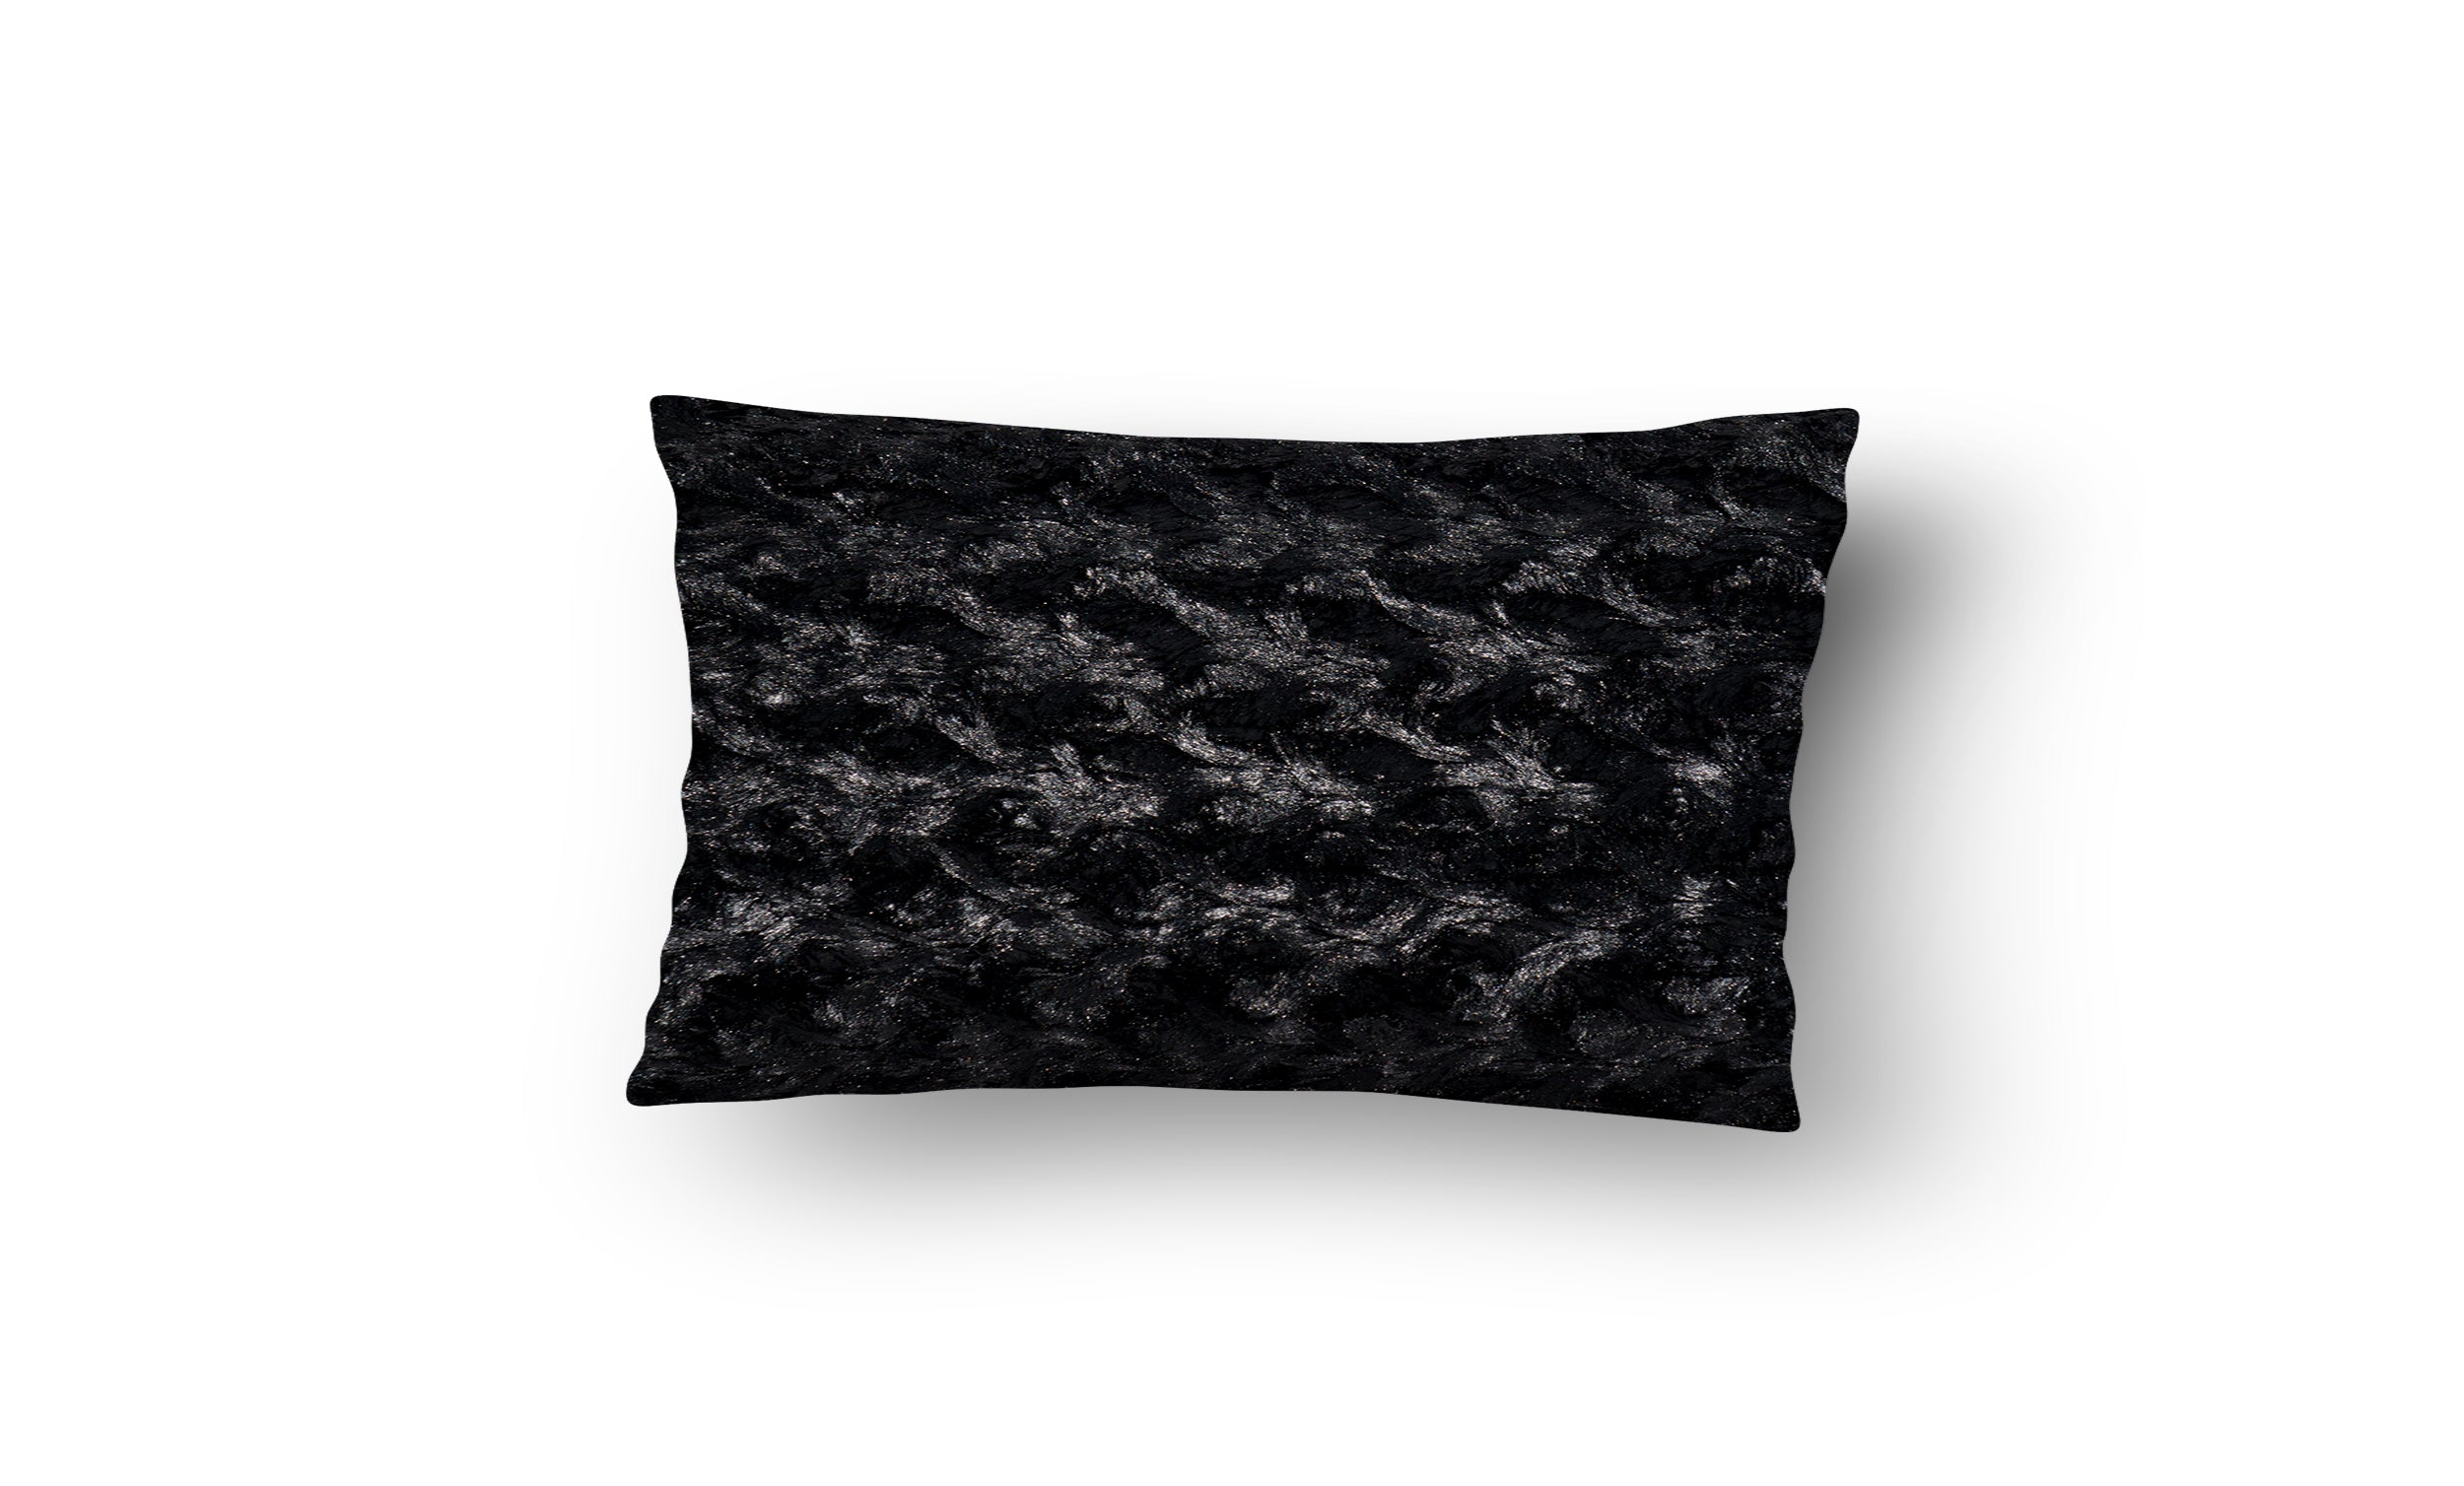 Swirled Faux Fur Pillow Cover